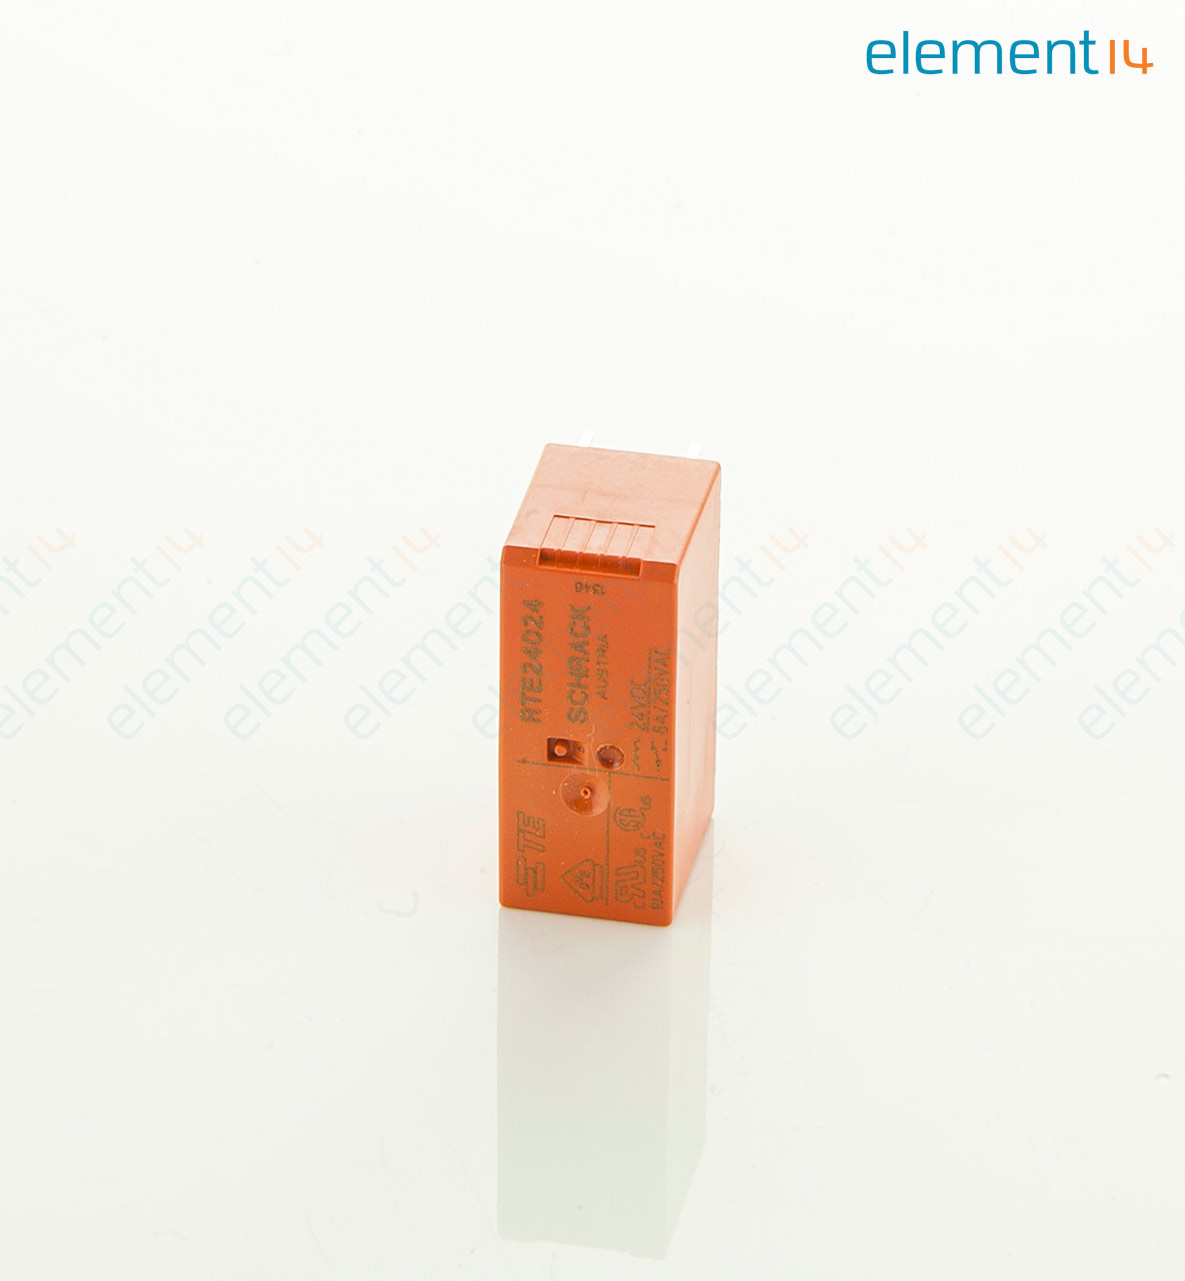 Rte24024 Schrack Te Connectivity General Purpose Relay Rt2 Electrical Selection Series 8 A 24 Vdc Power Non Latching Dpdt